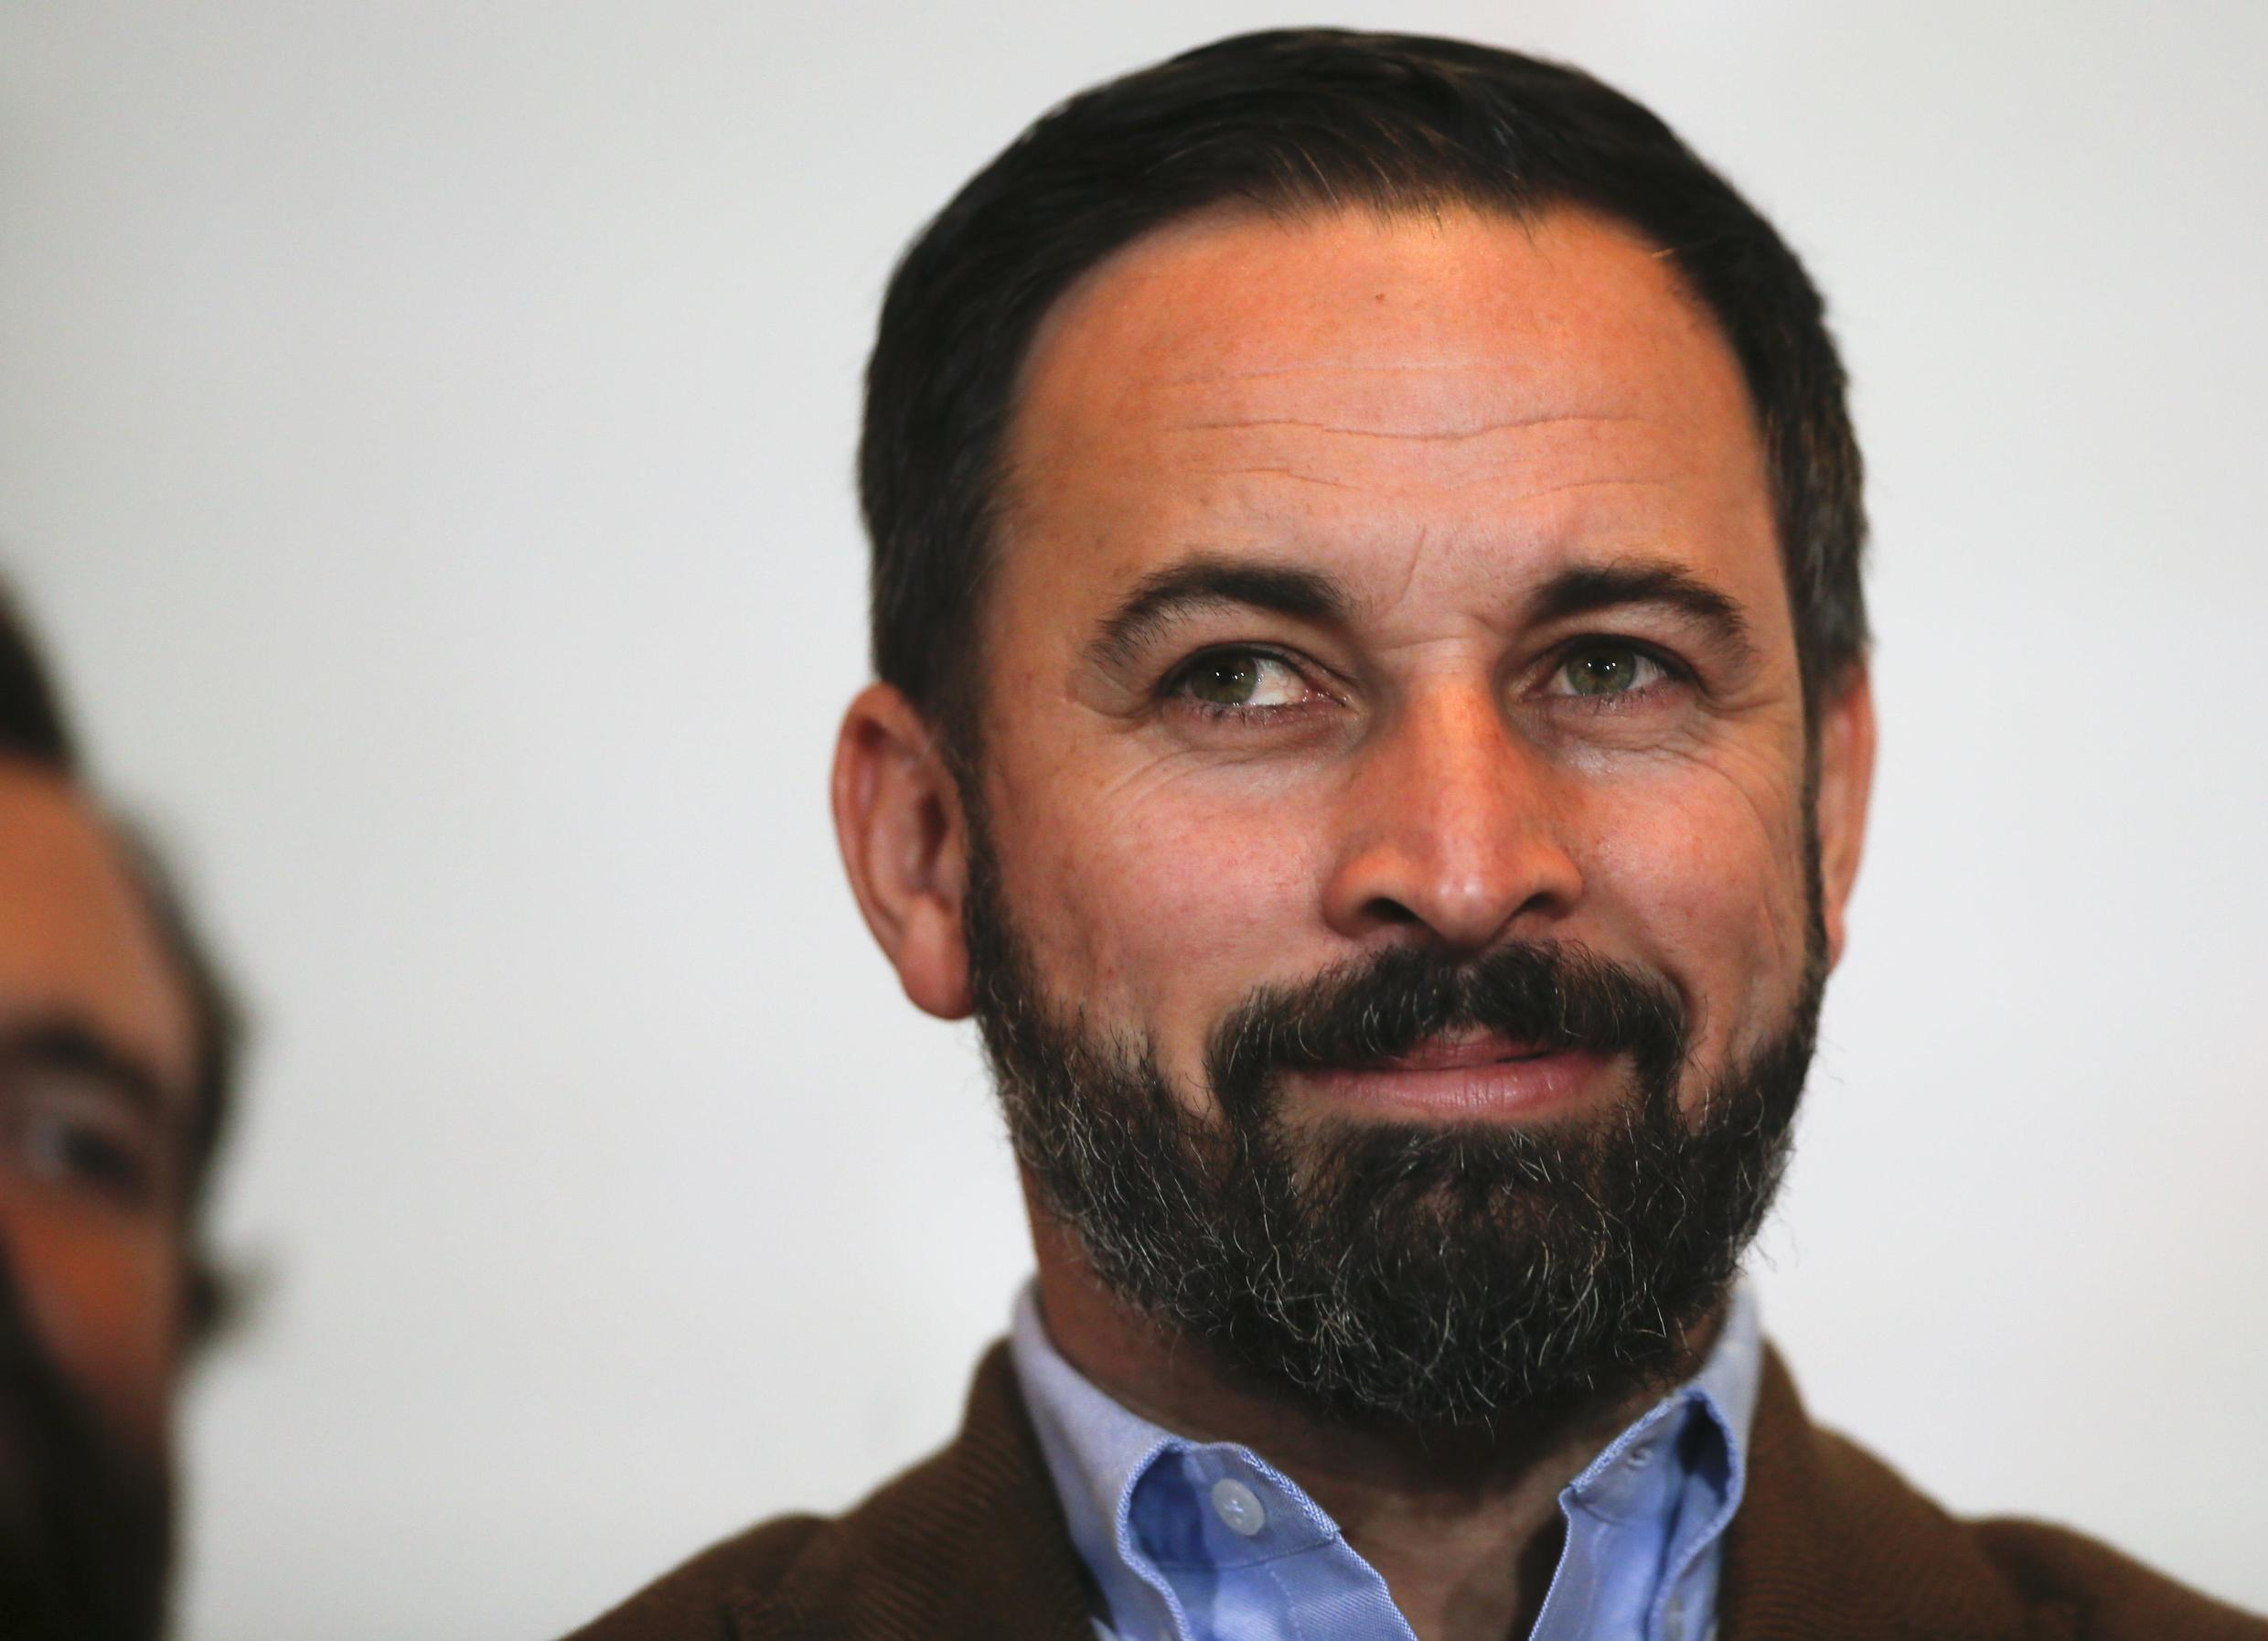 Santiago Abascal has led Vox into the position of kingmakers following elections in Andalusia.